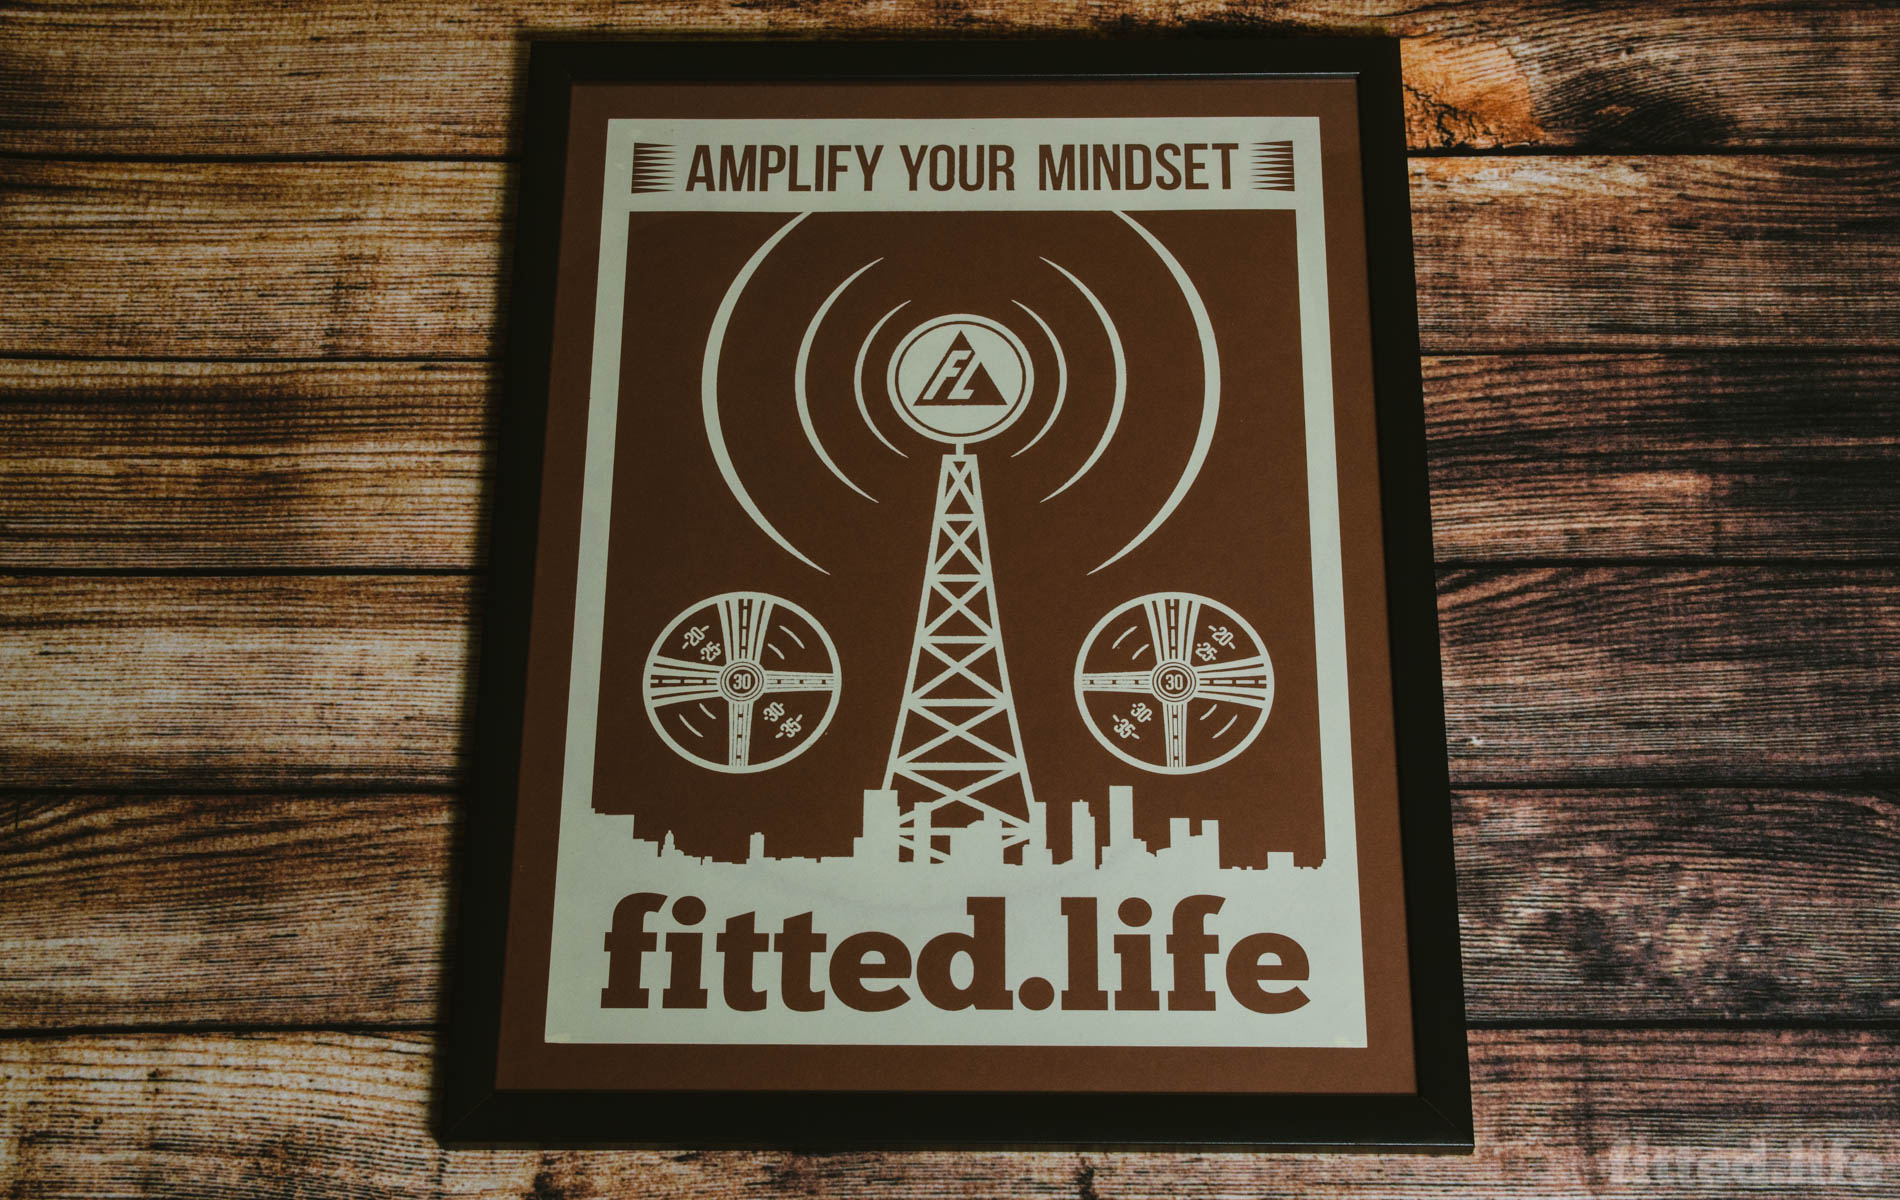 fitted-life-amplify-your-mindset-print